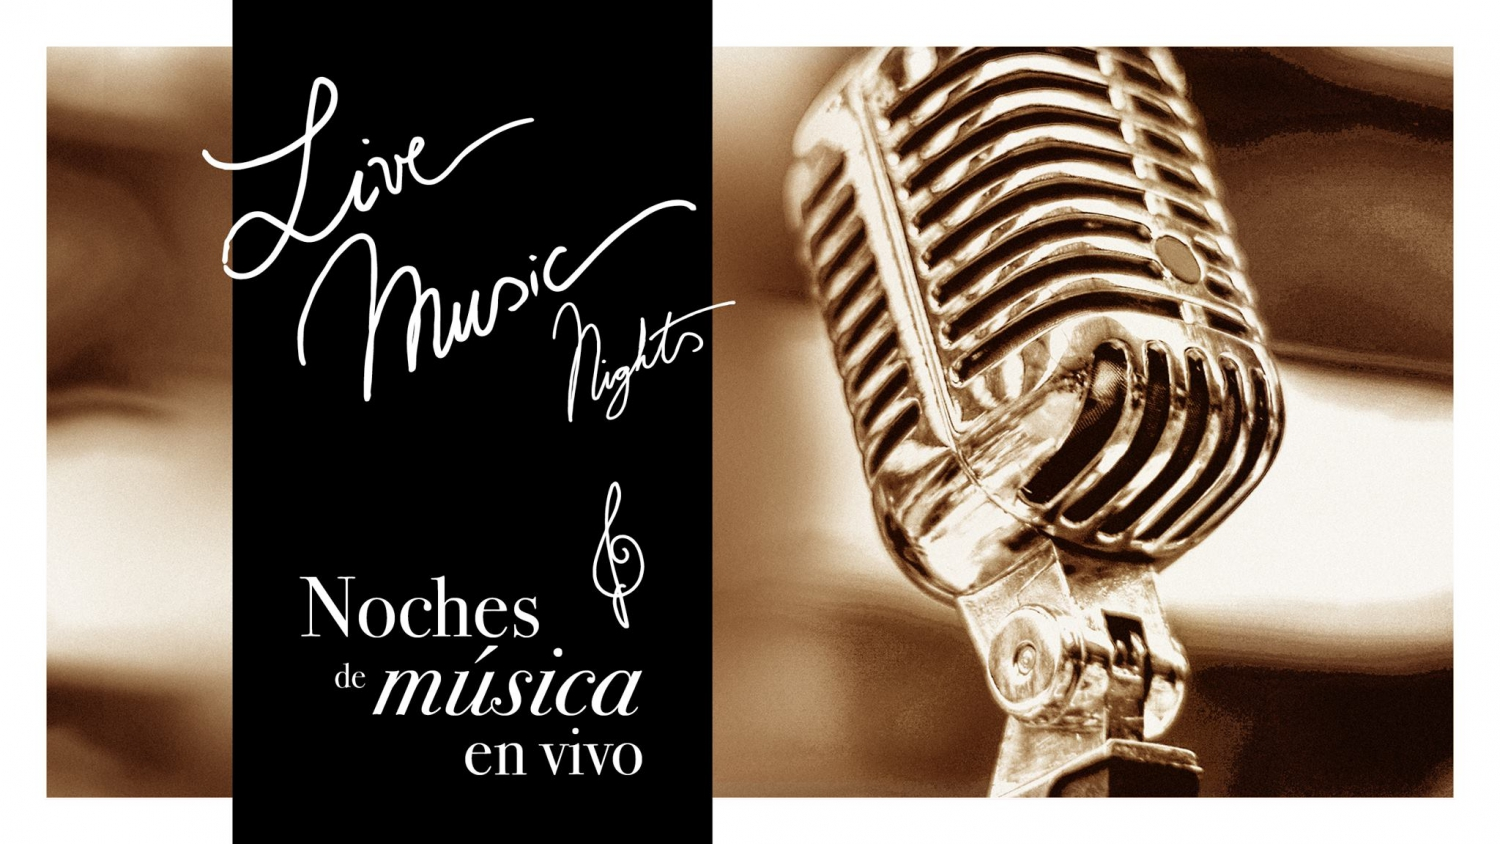 Live Music Nights at The Marbella Club